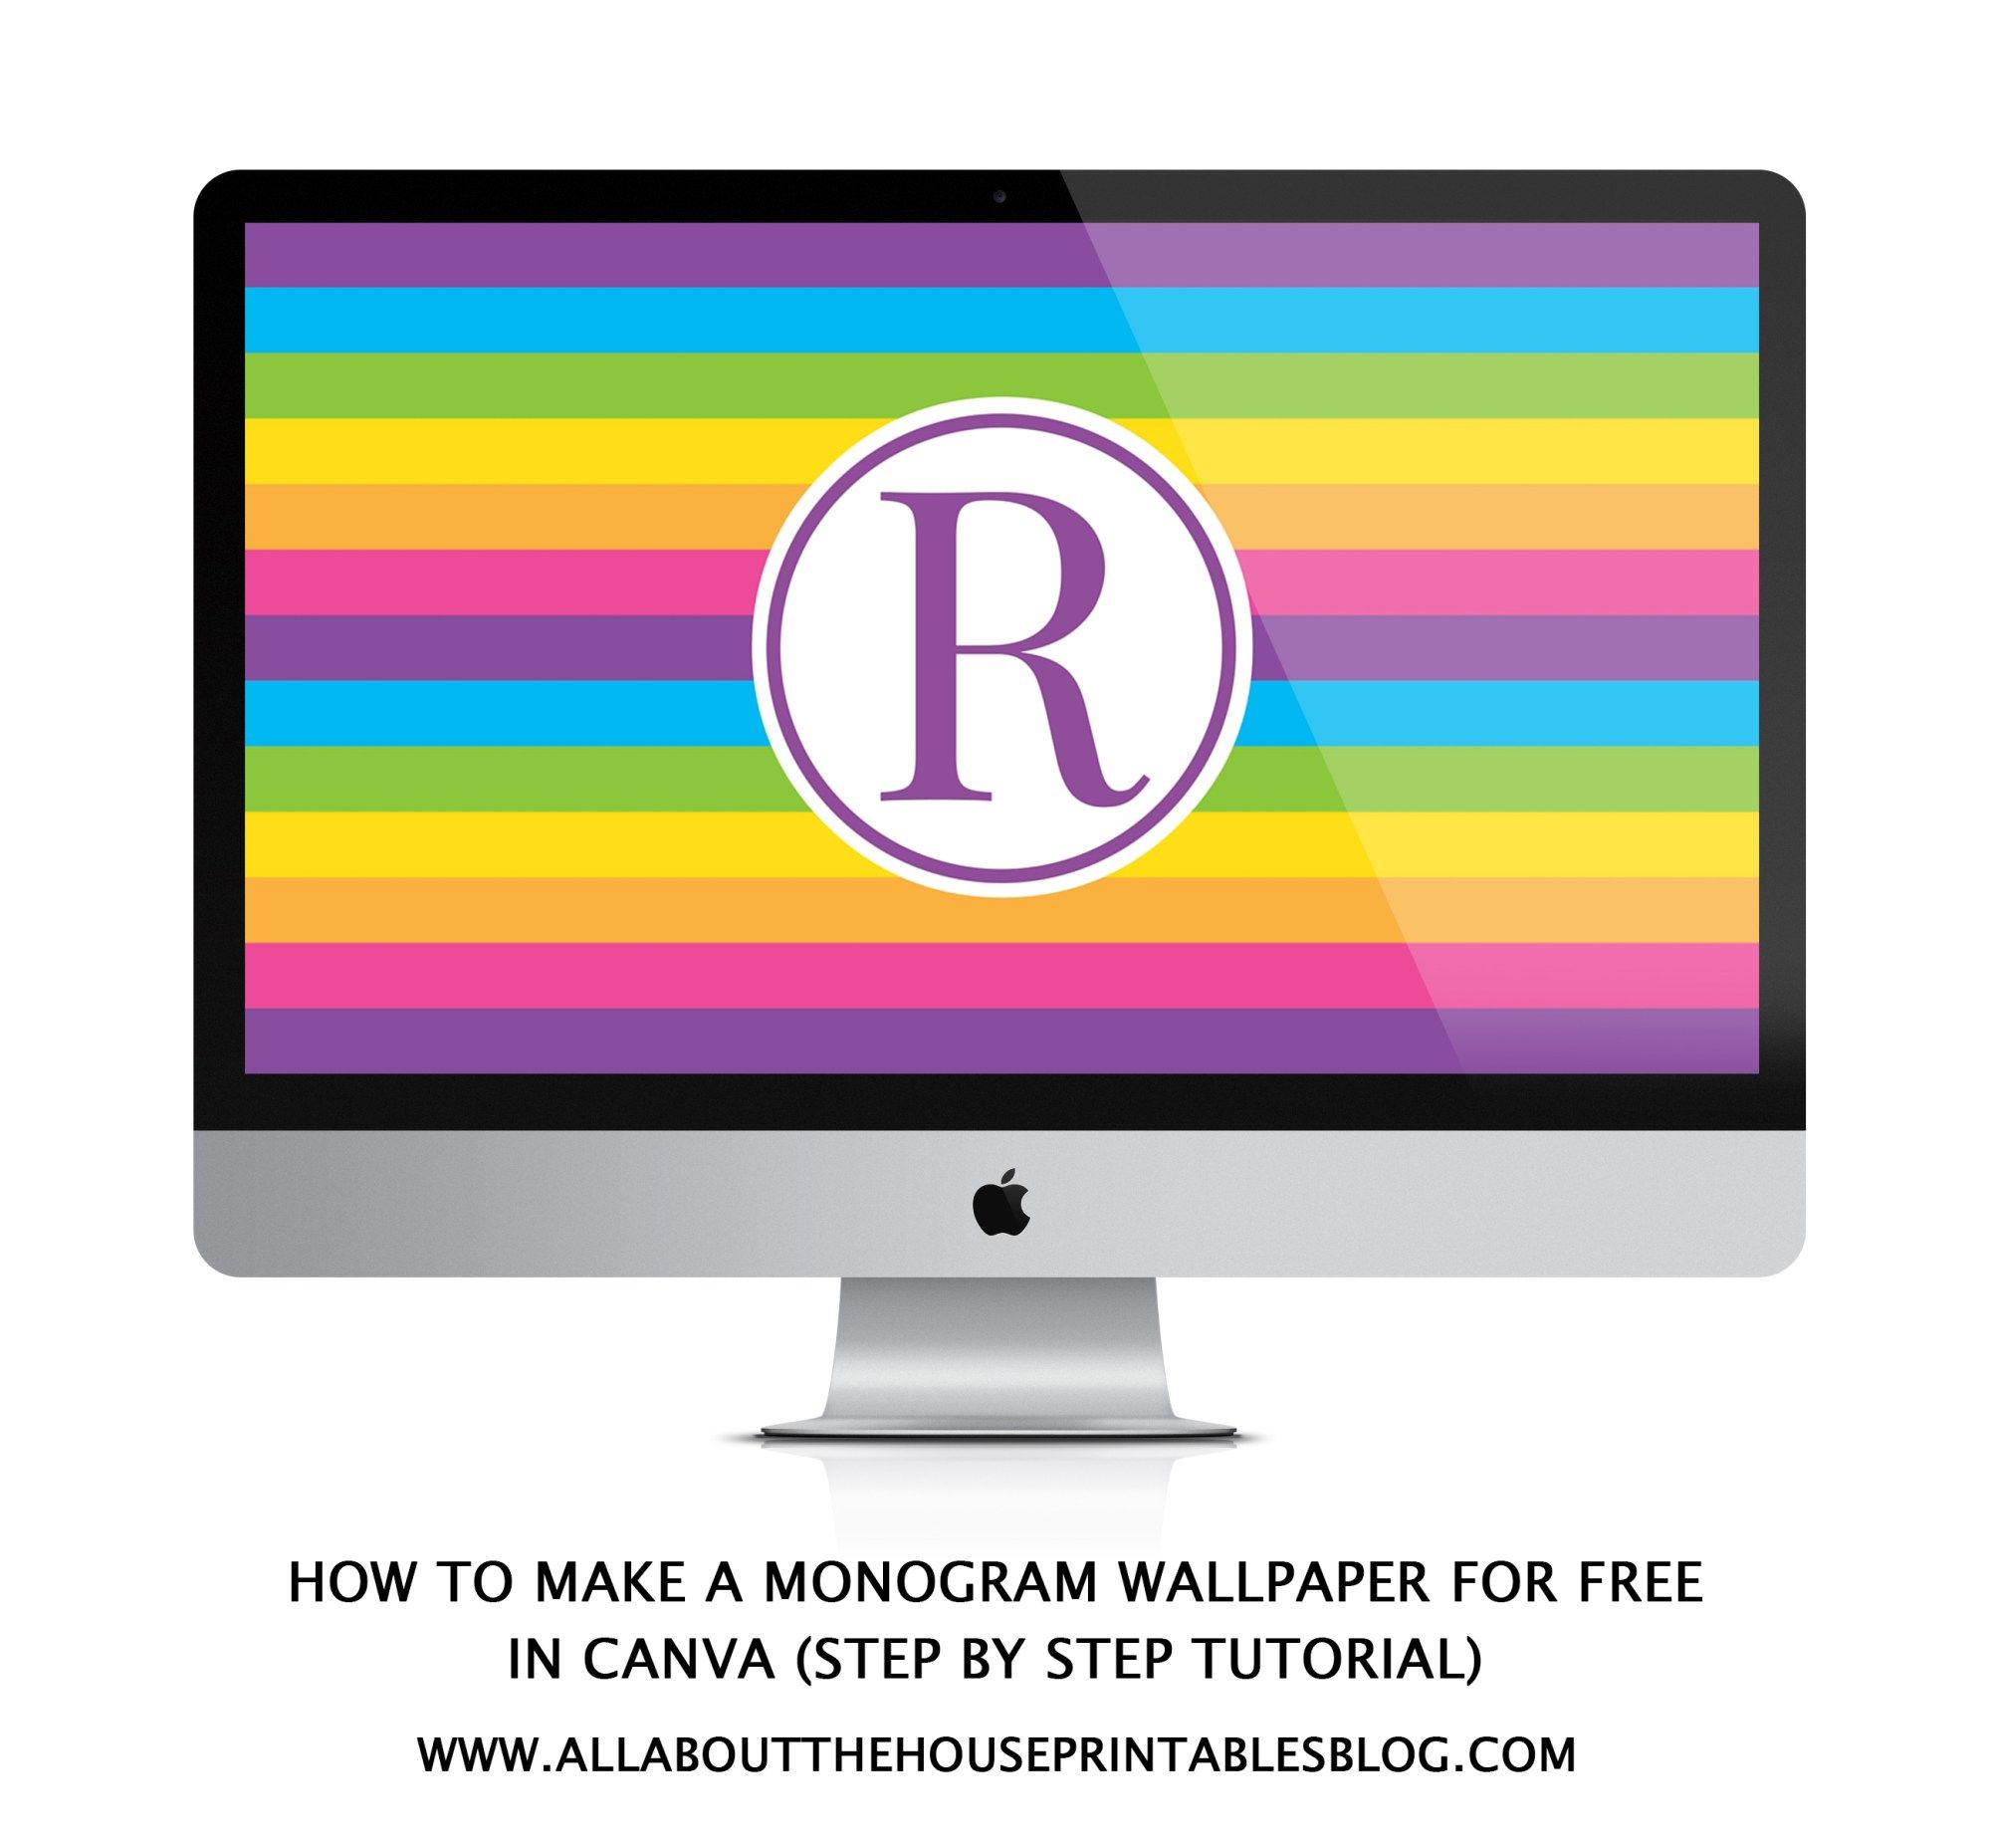 How to make a monogram computer wallpaper for FREE using